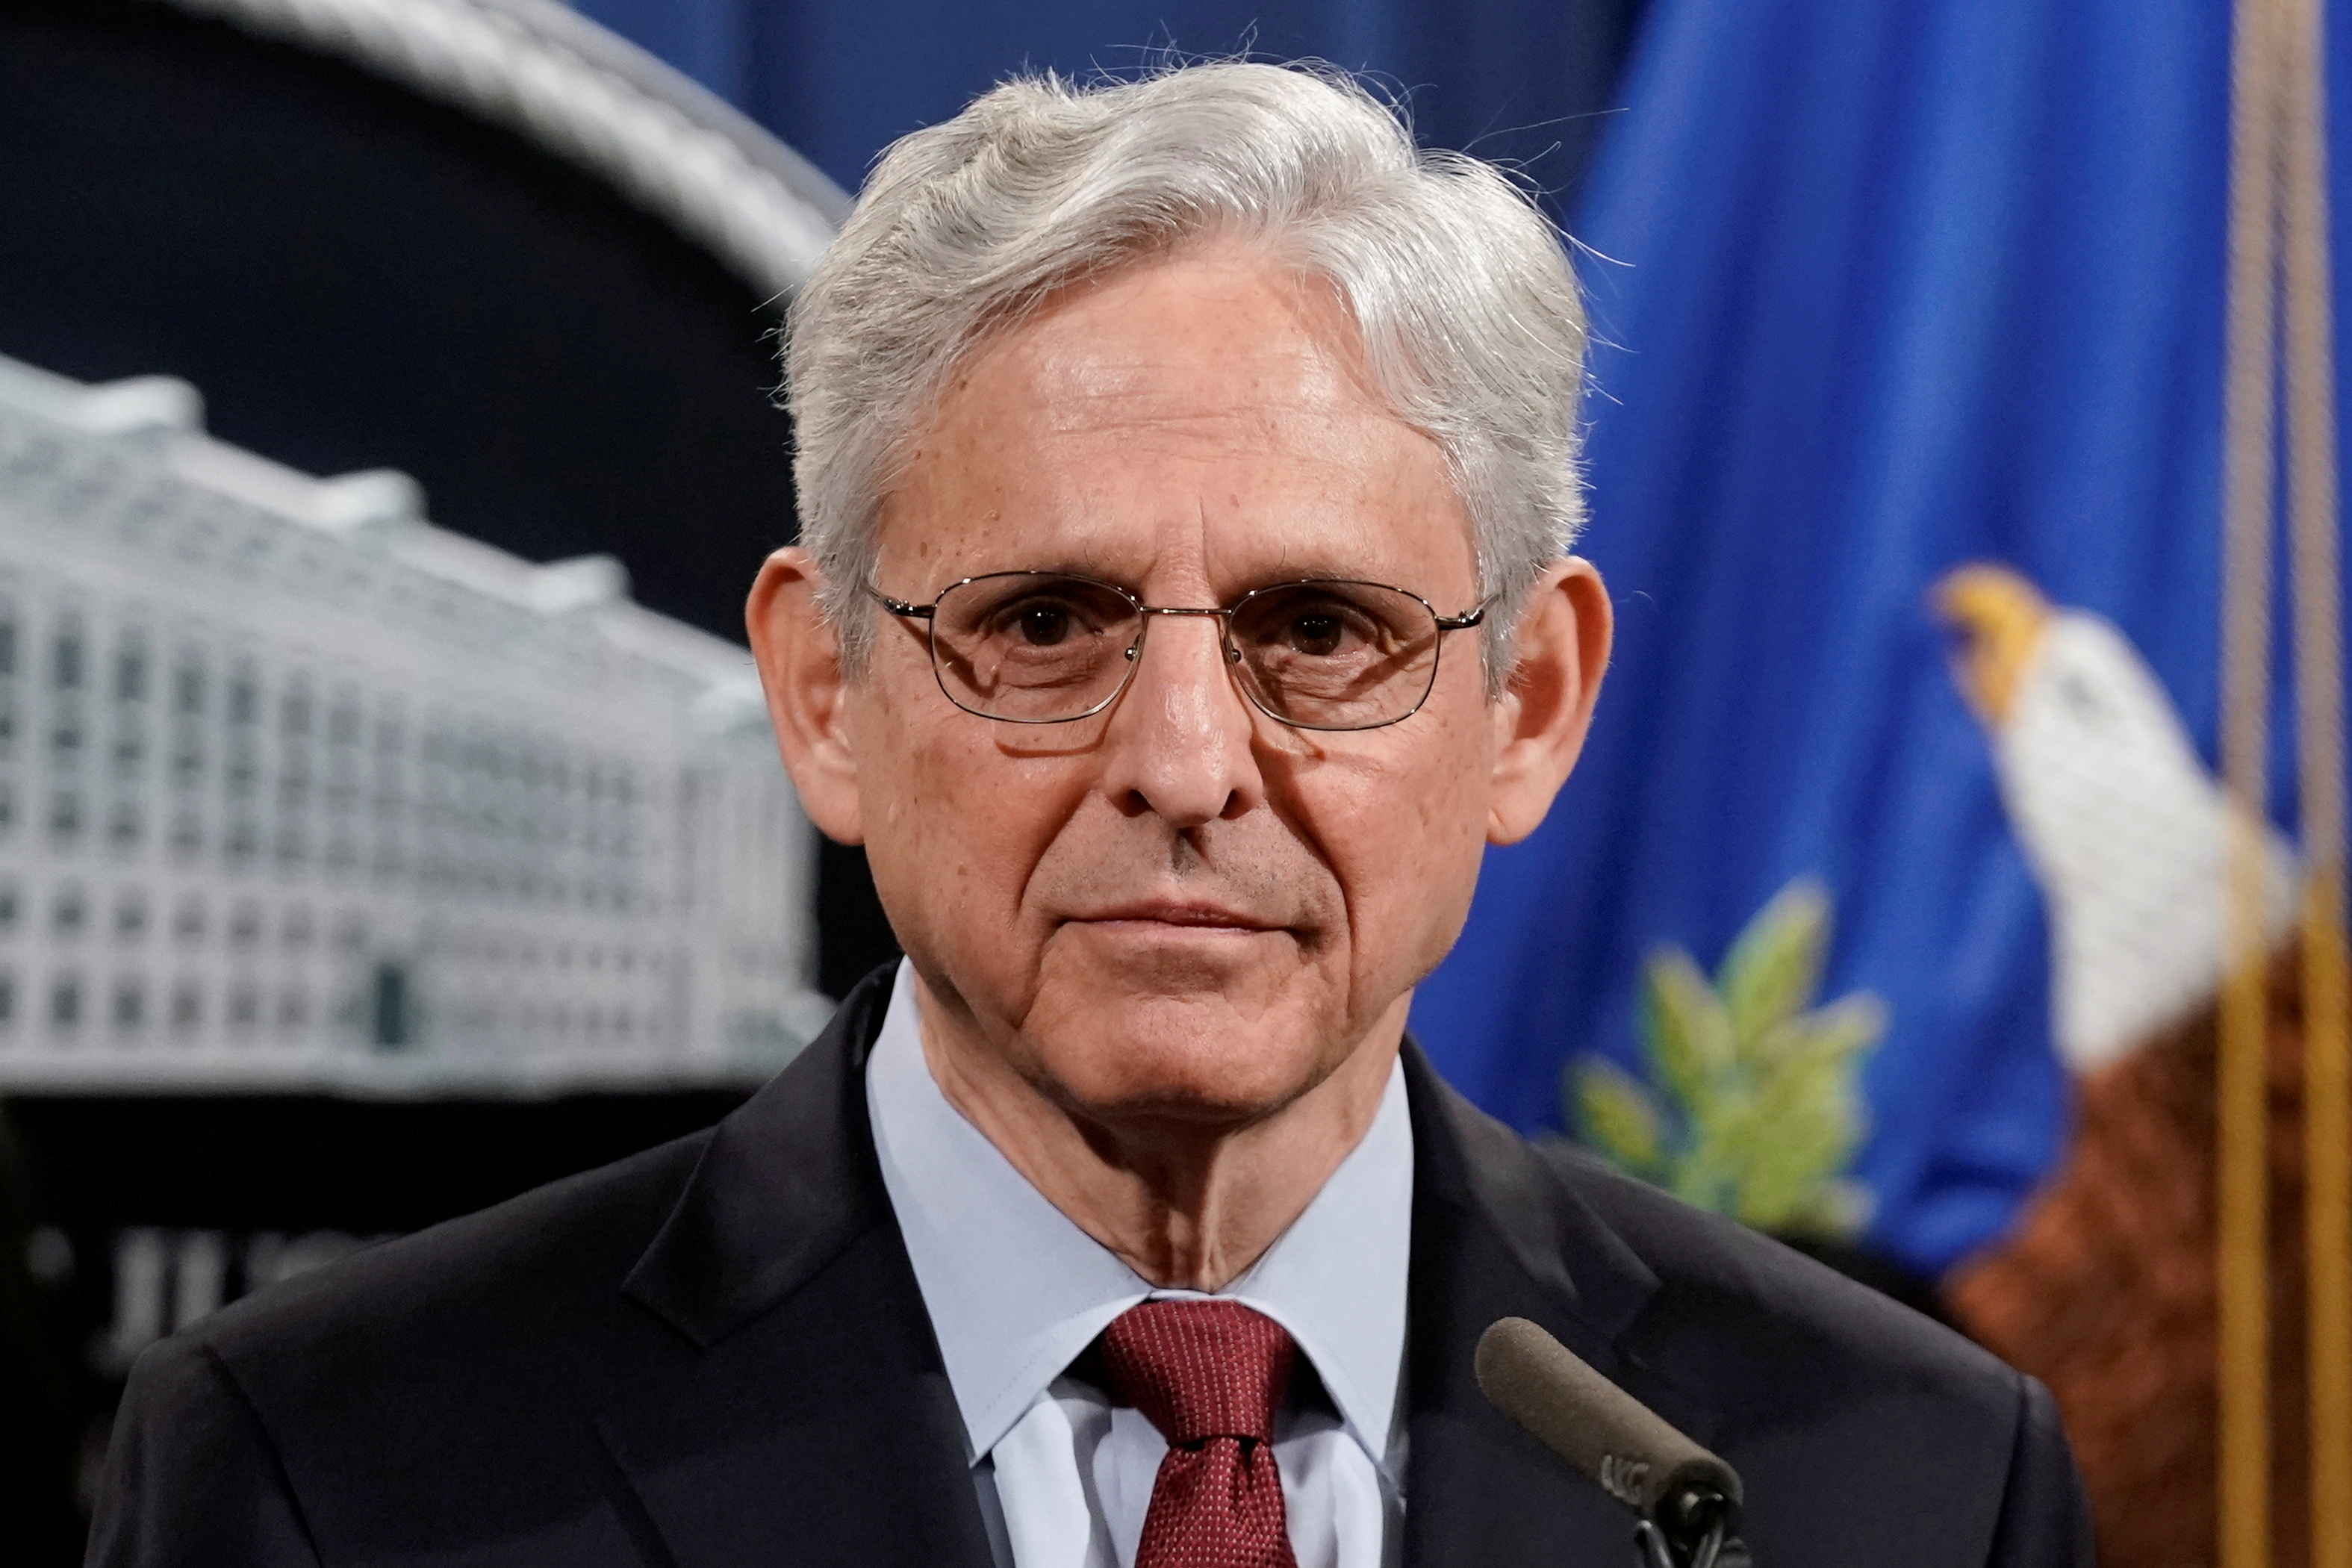 U.S. Attorney General Merrick Garland looks on as he announces that the Justice Department will file a lawsuit challenging a Georgia election law that imposes new limits on voting, during a news conference at the Department of Justice in Washington, D.C., U.S., June 25, 2021. REUTERS/Ken Cedeno/File Photo